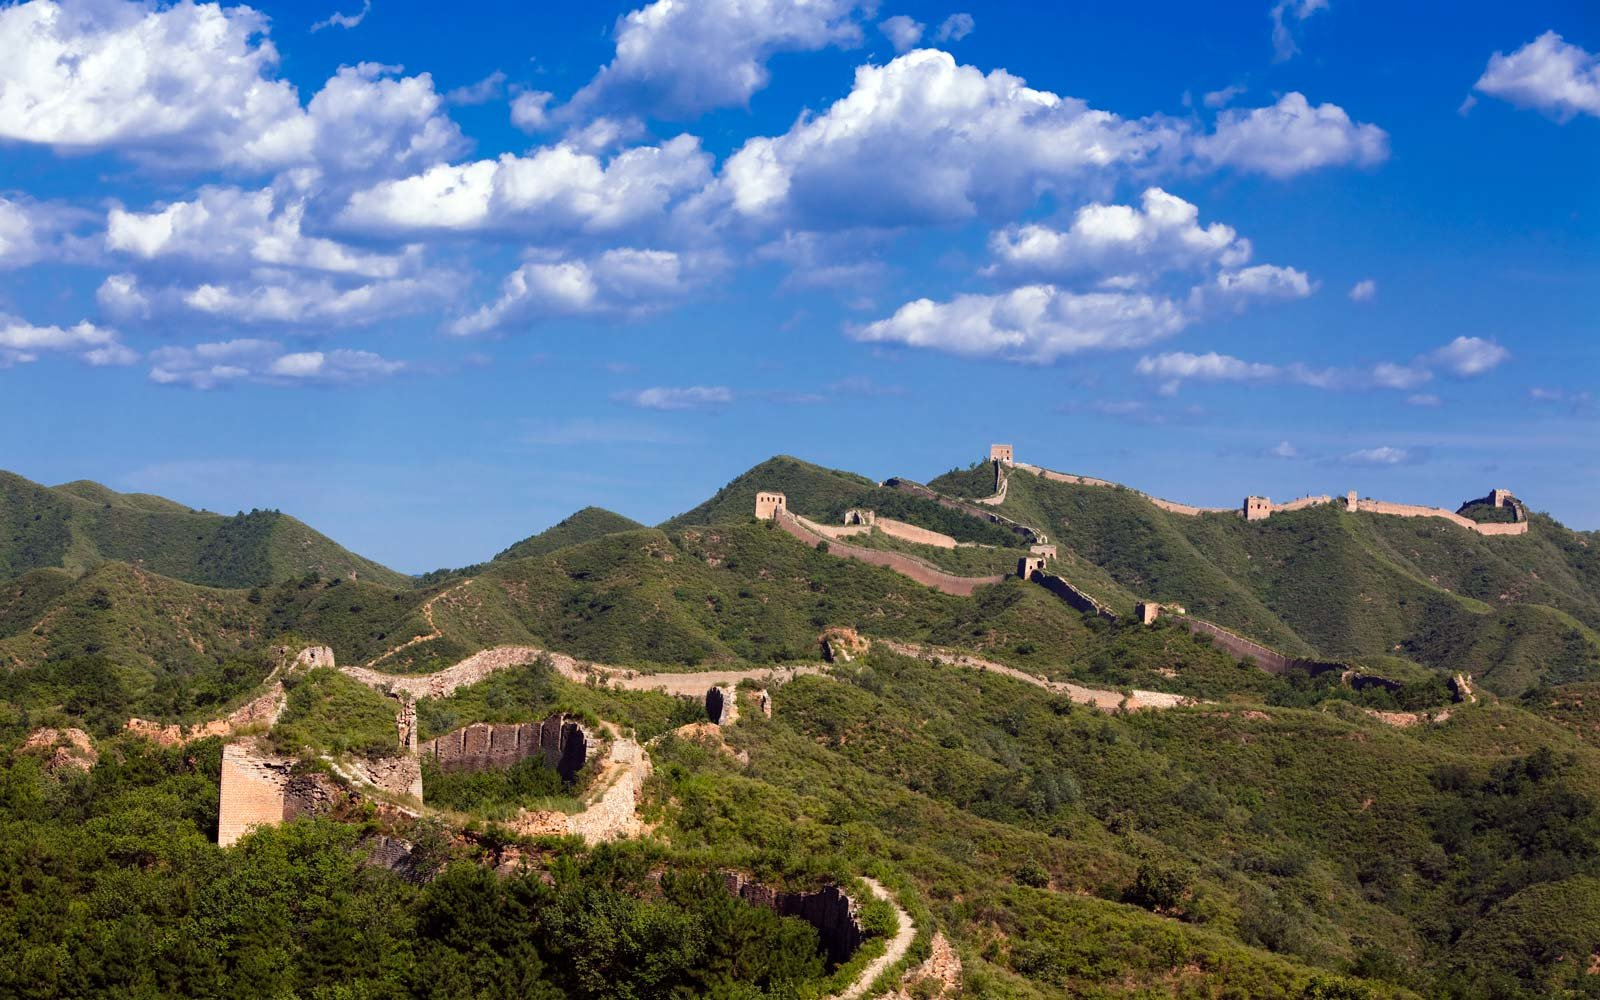 The Great Wall... Probably the first place you should go once you get your Chinese visa.